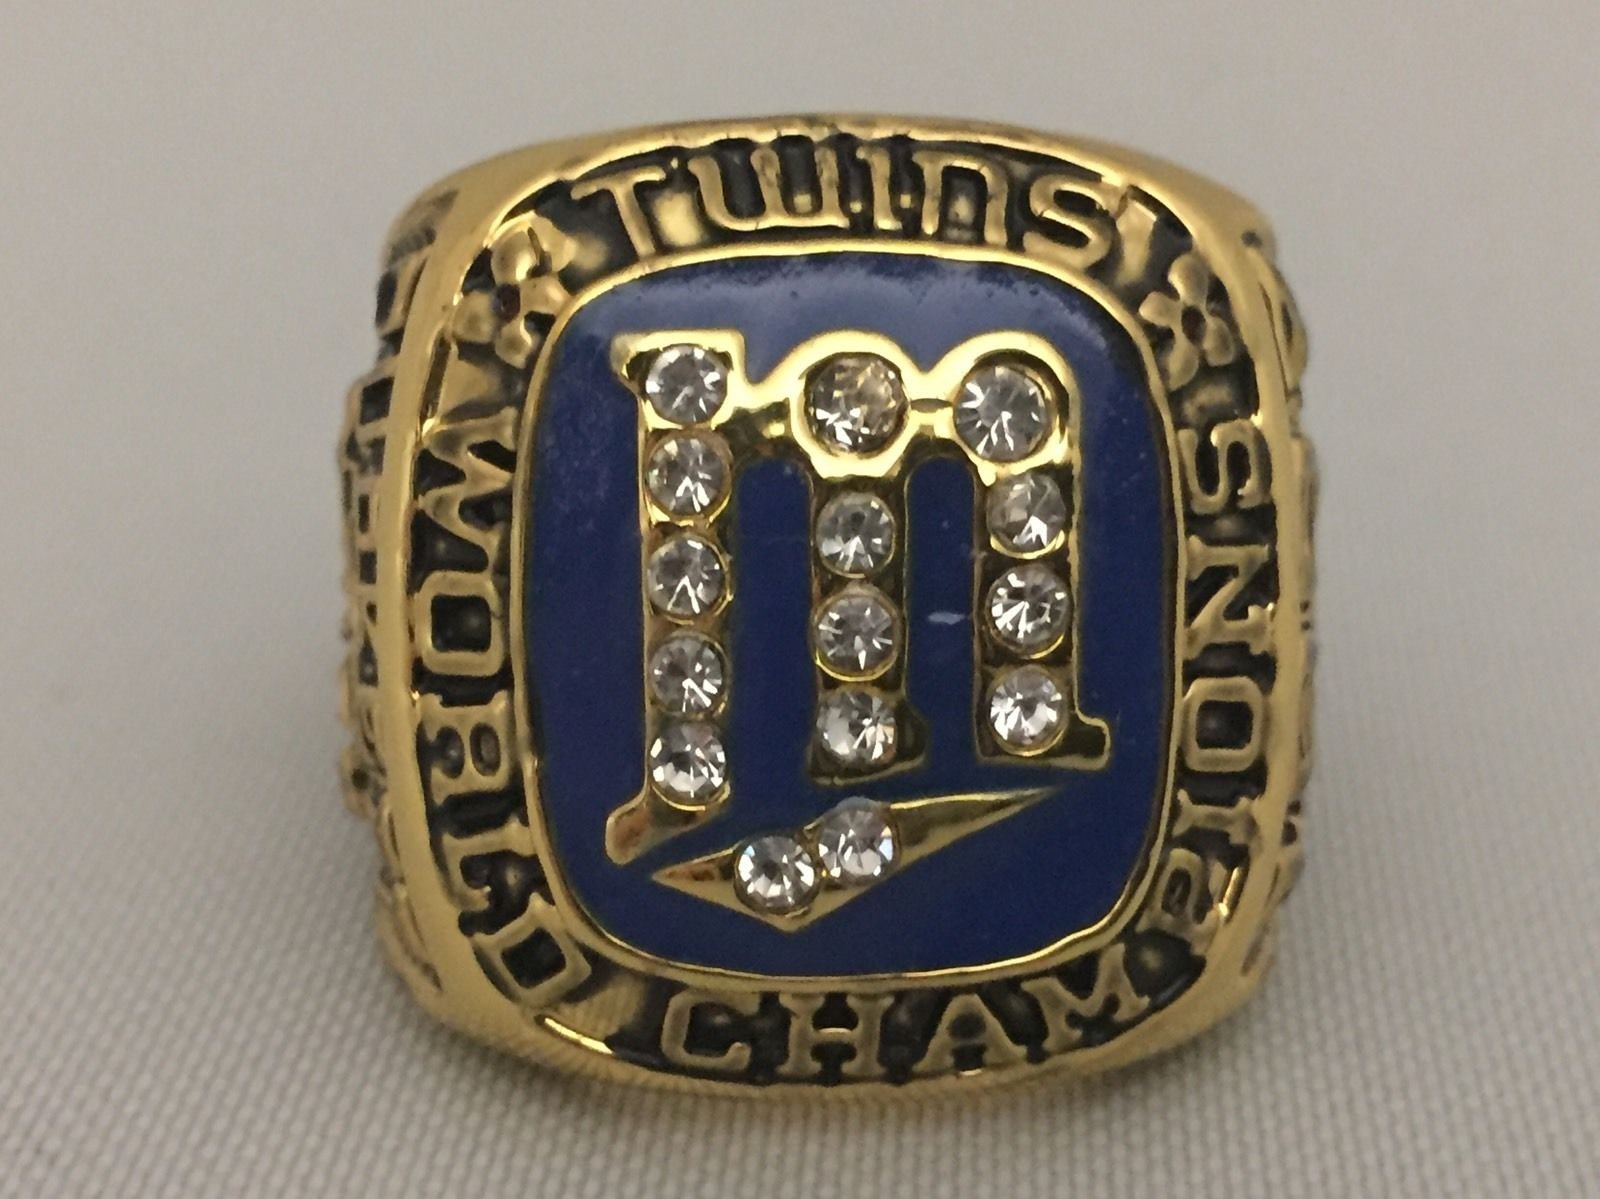 Minnesota Twins Replica Ring